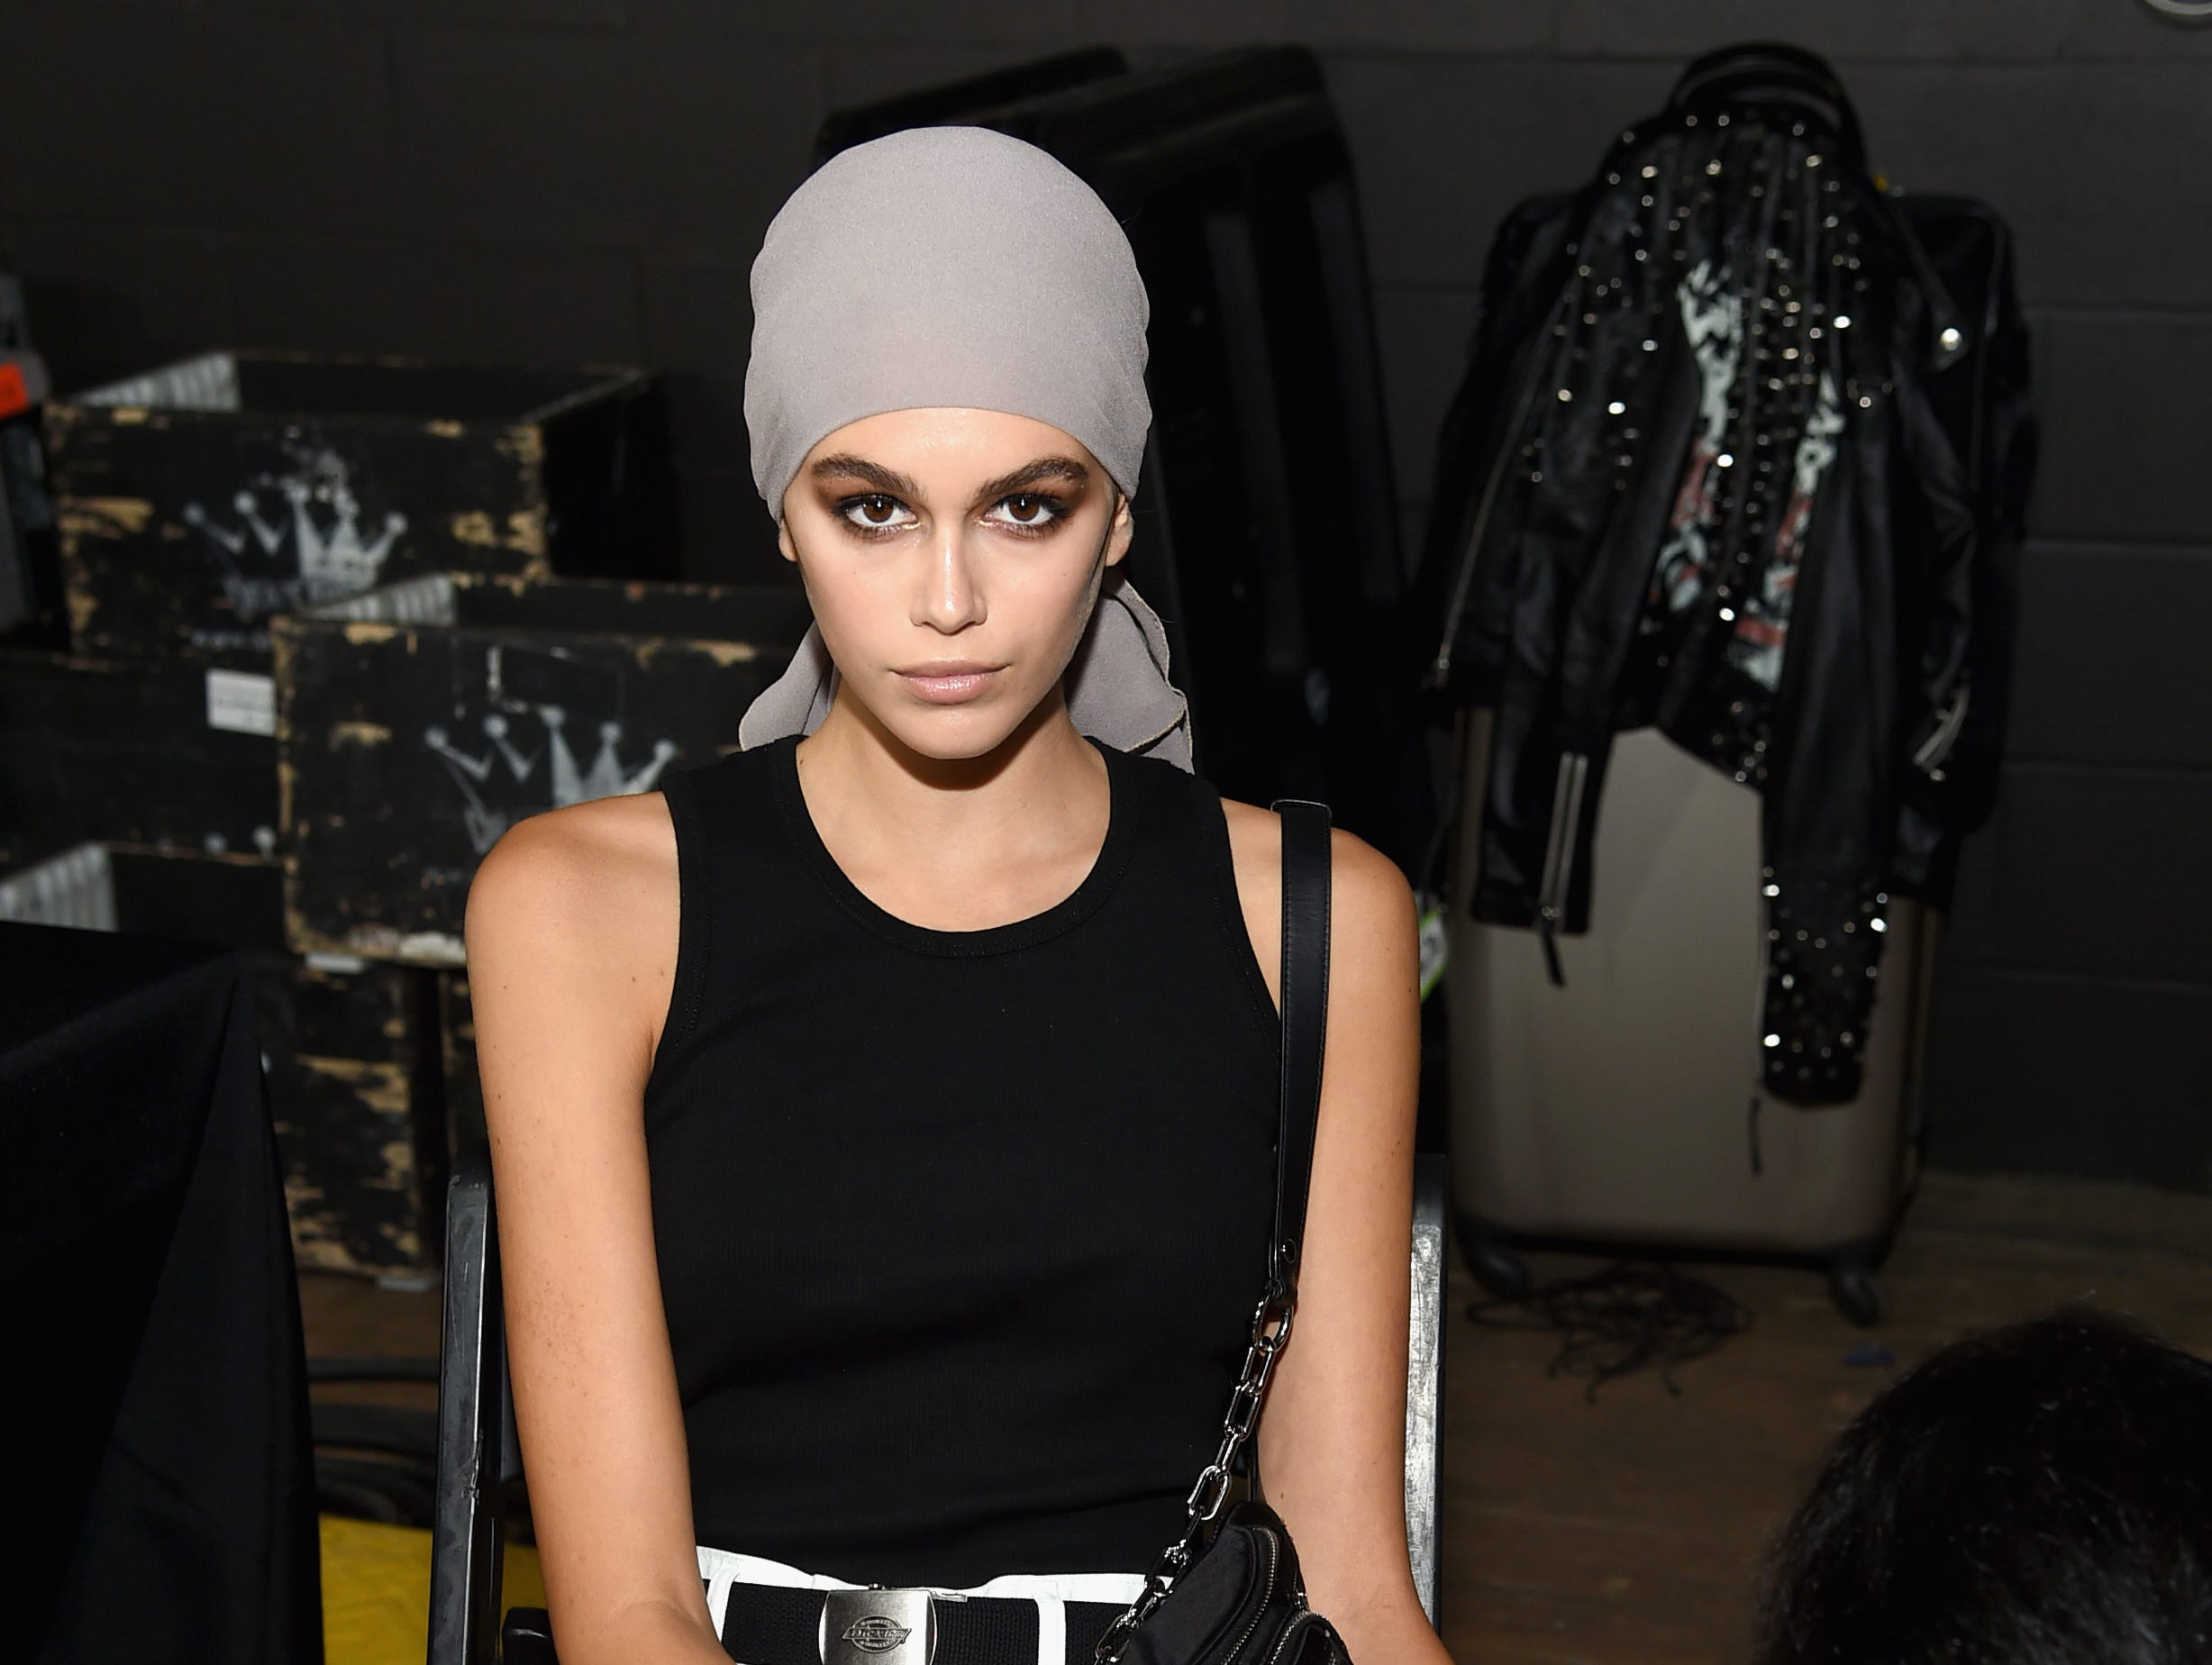 NEW YORK, NY - SEPTEMBER 05:  Kaia Gerber poses backstage at the Tom Ford fashion show during New York Fashion Week at Park Avenue Armory on September 5, 2018 in New York City.  (Photo by Jamie McCarthy/Getty Images) ORG XMIT: 775216224 ORIG FILE ID: 1027412318